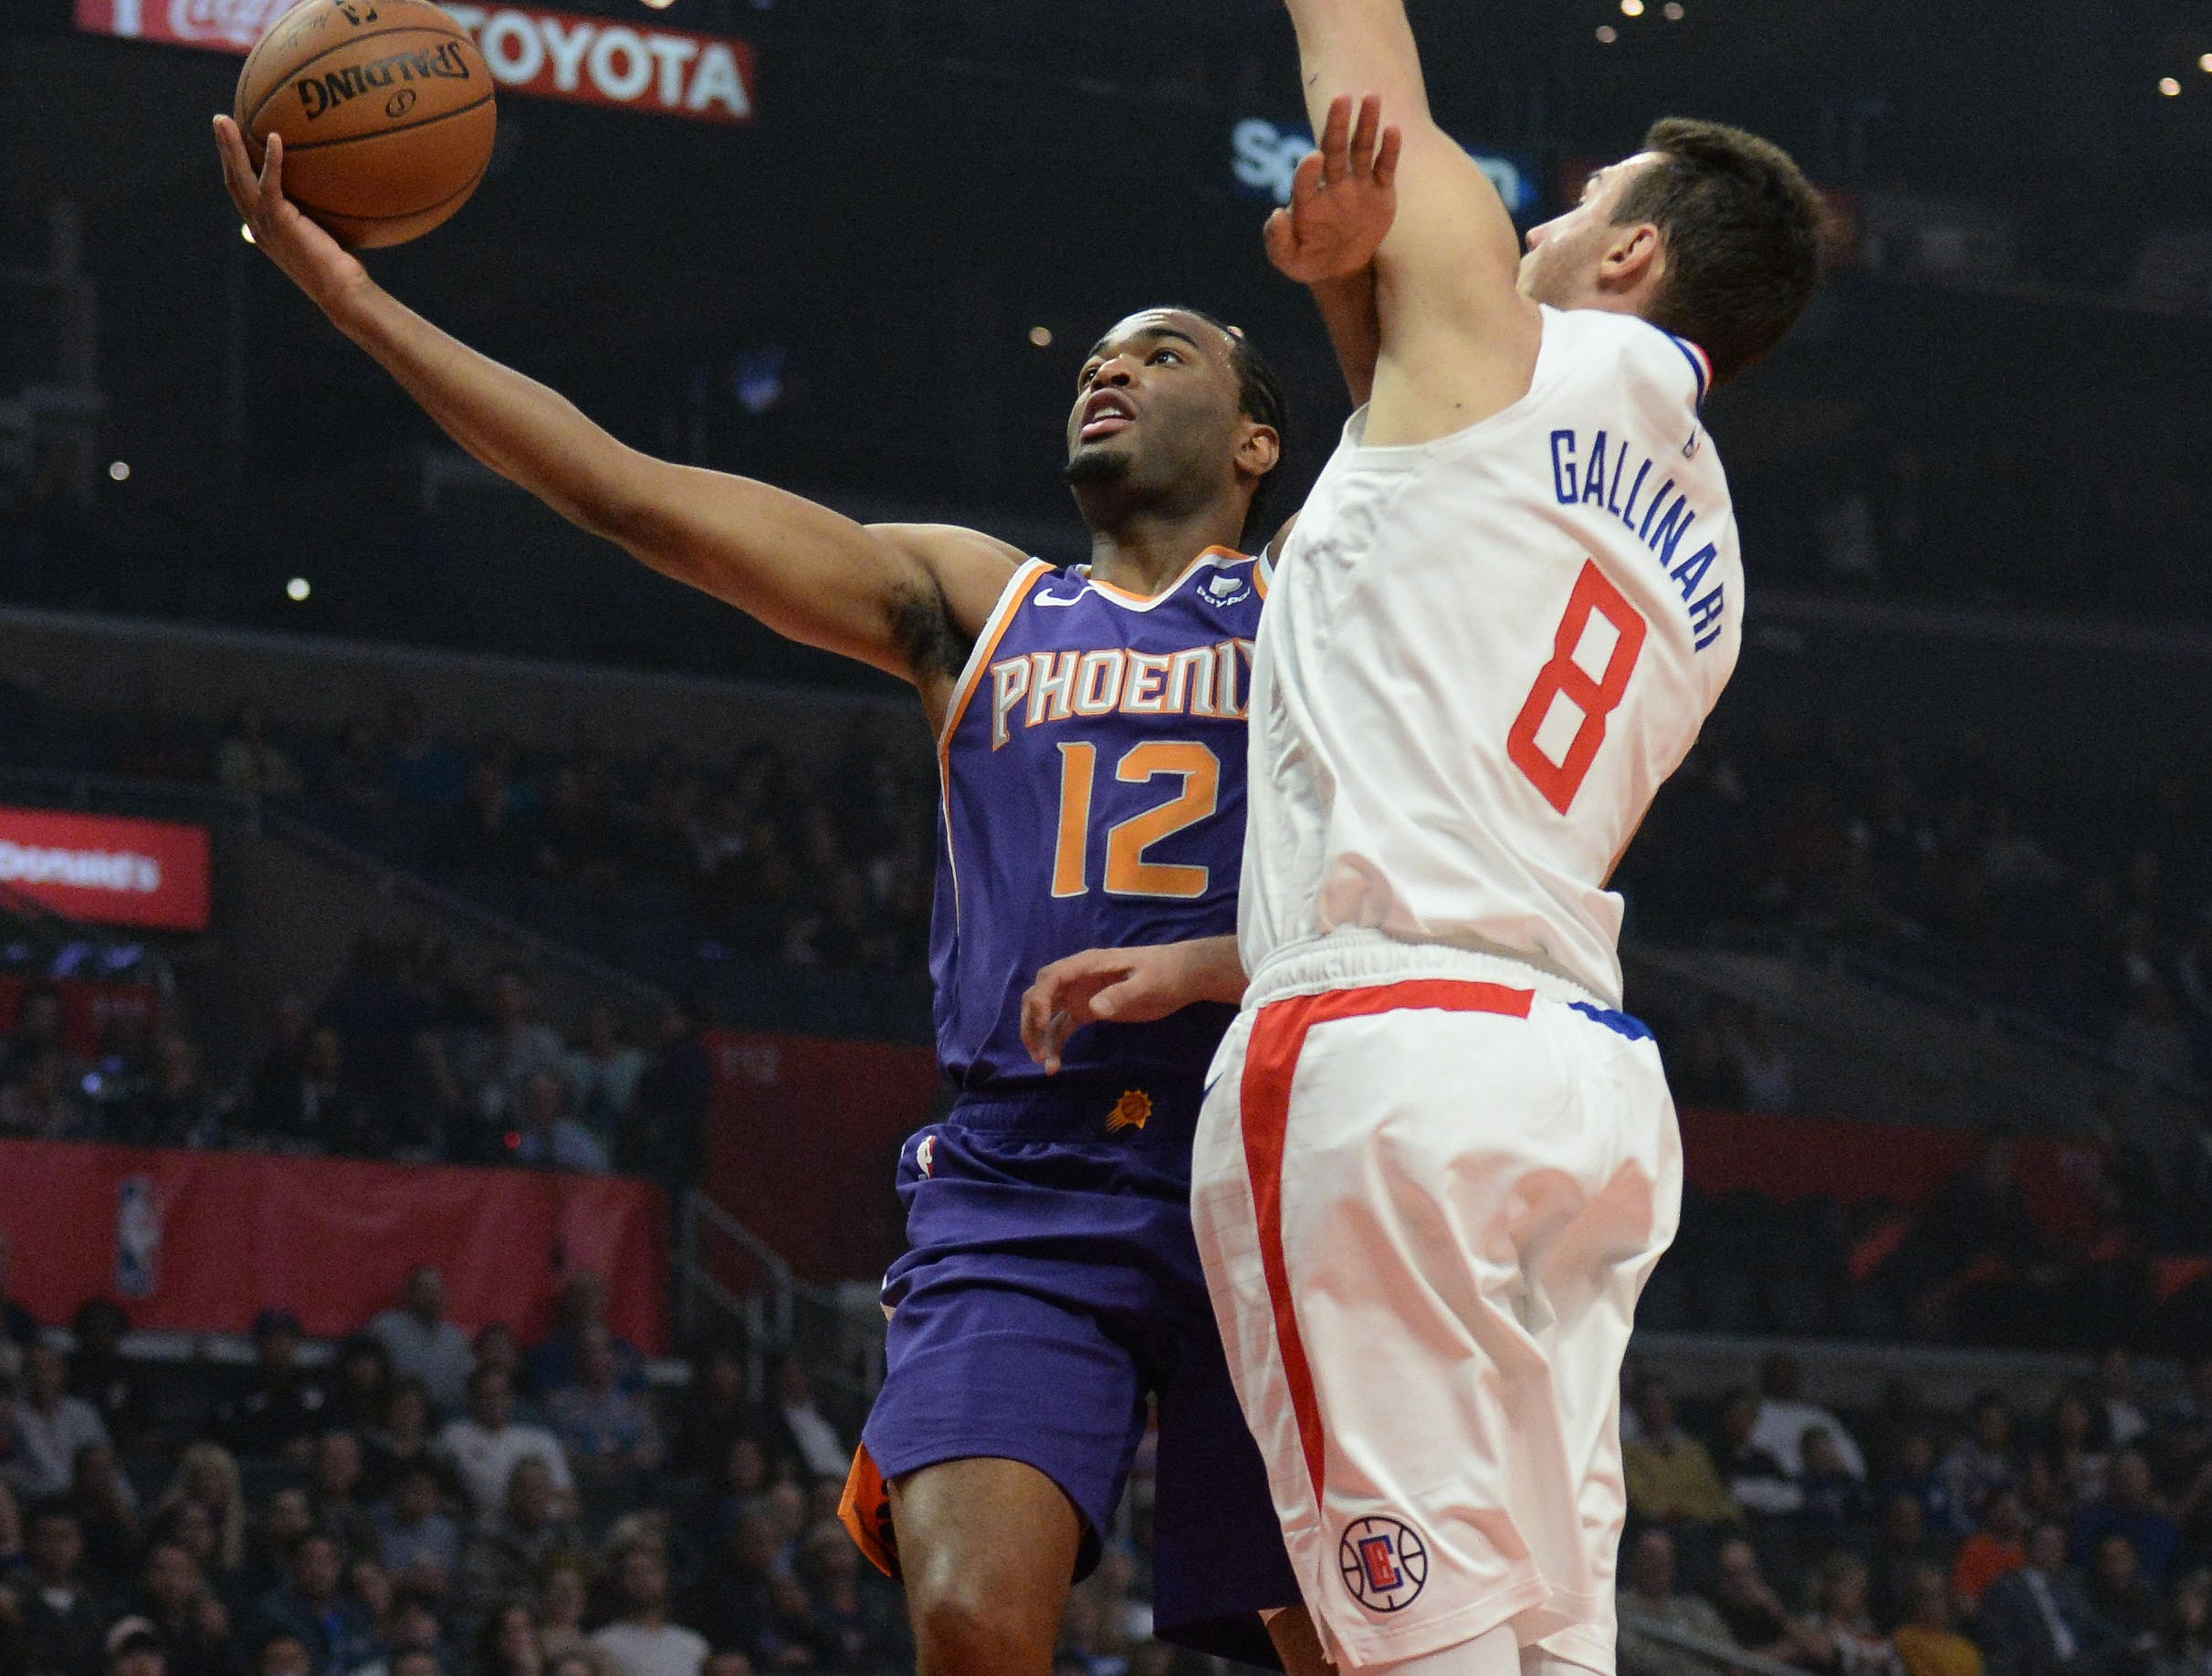 November 28, 2018; Los Angeles, CA, USA; Phoenix Suns forward T.J. Warren (12) moves in to score a basket against Los Angeles Clippers forward Danilo Gallinari (8) during the first half at Staples Center. Mandatory Credit: Gary A. Vasquez-USA TODAY Sports